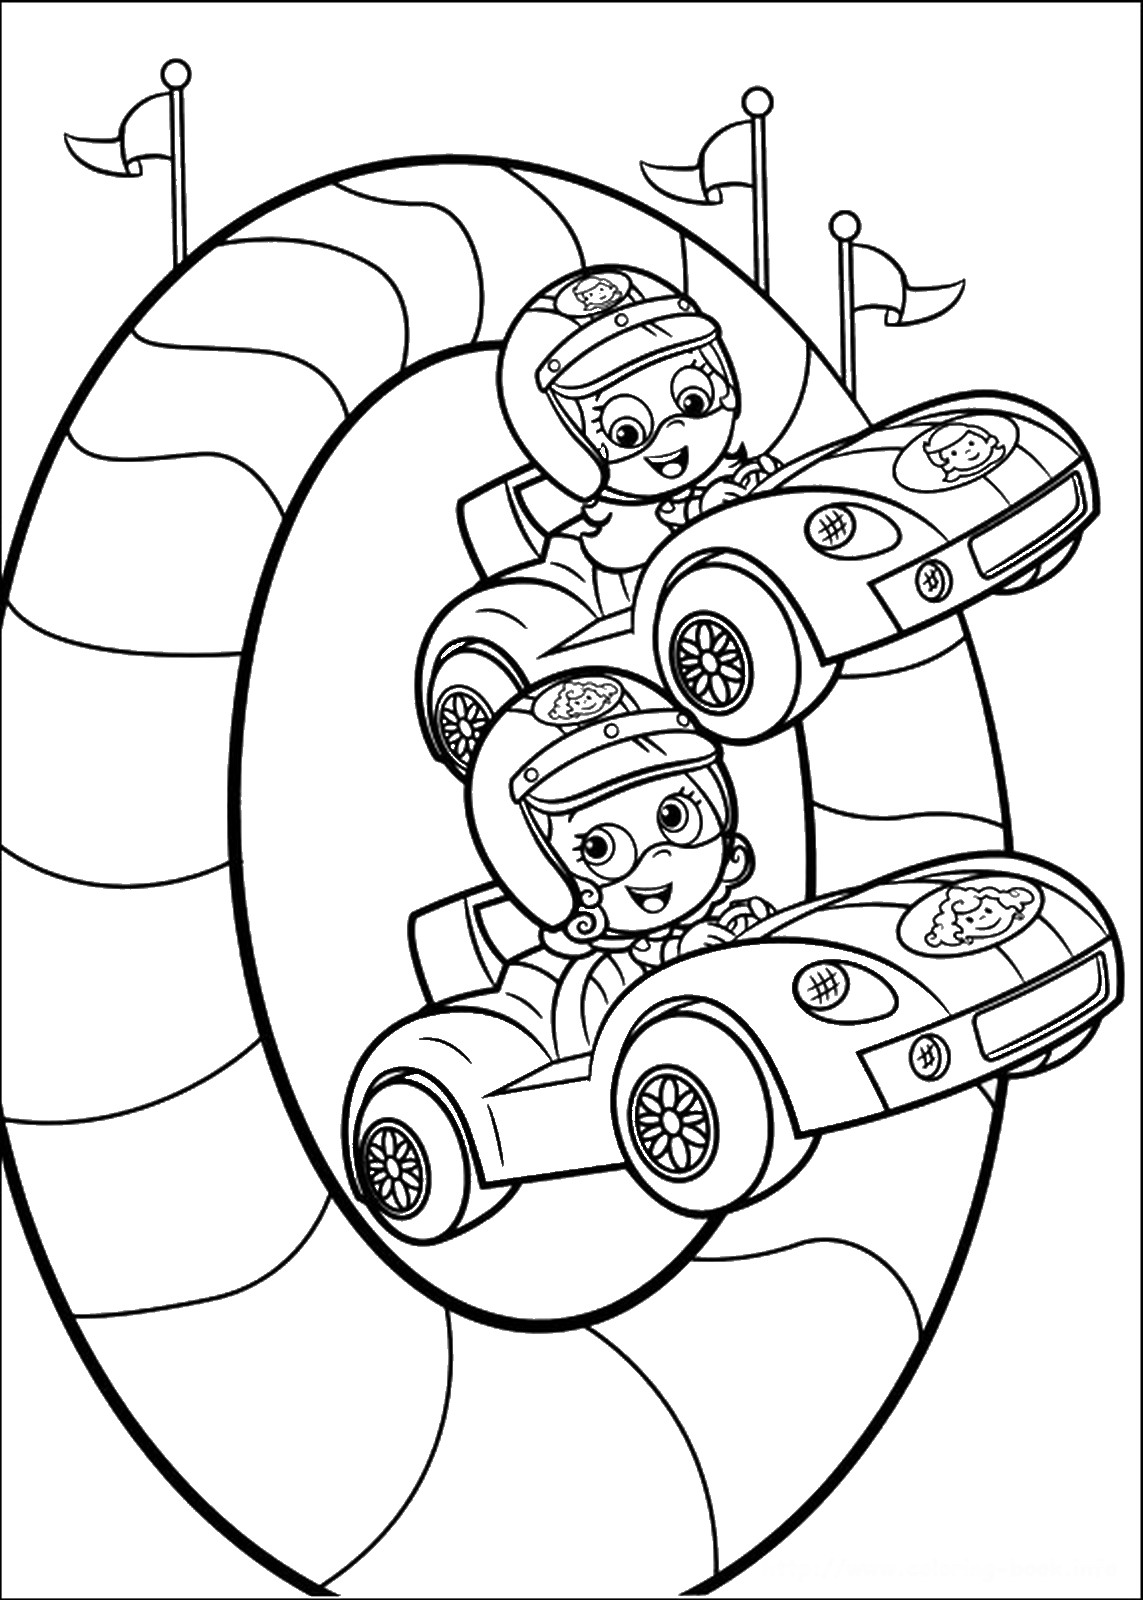 Bubble Guppies Coloring Pages Best Coloring Pages For Kids Printable Colouring Pages